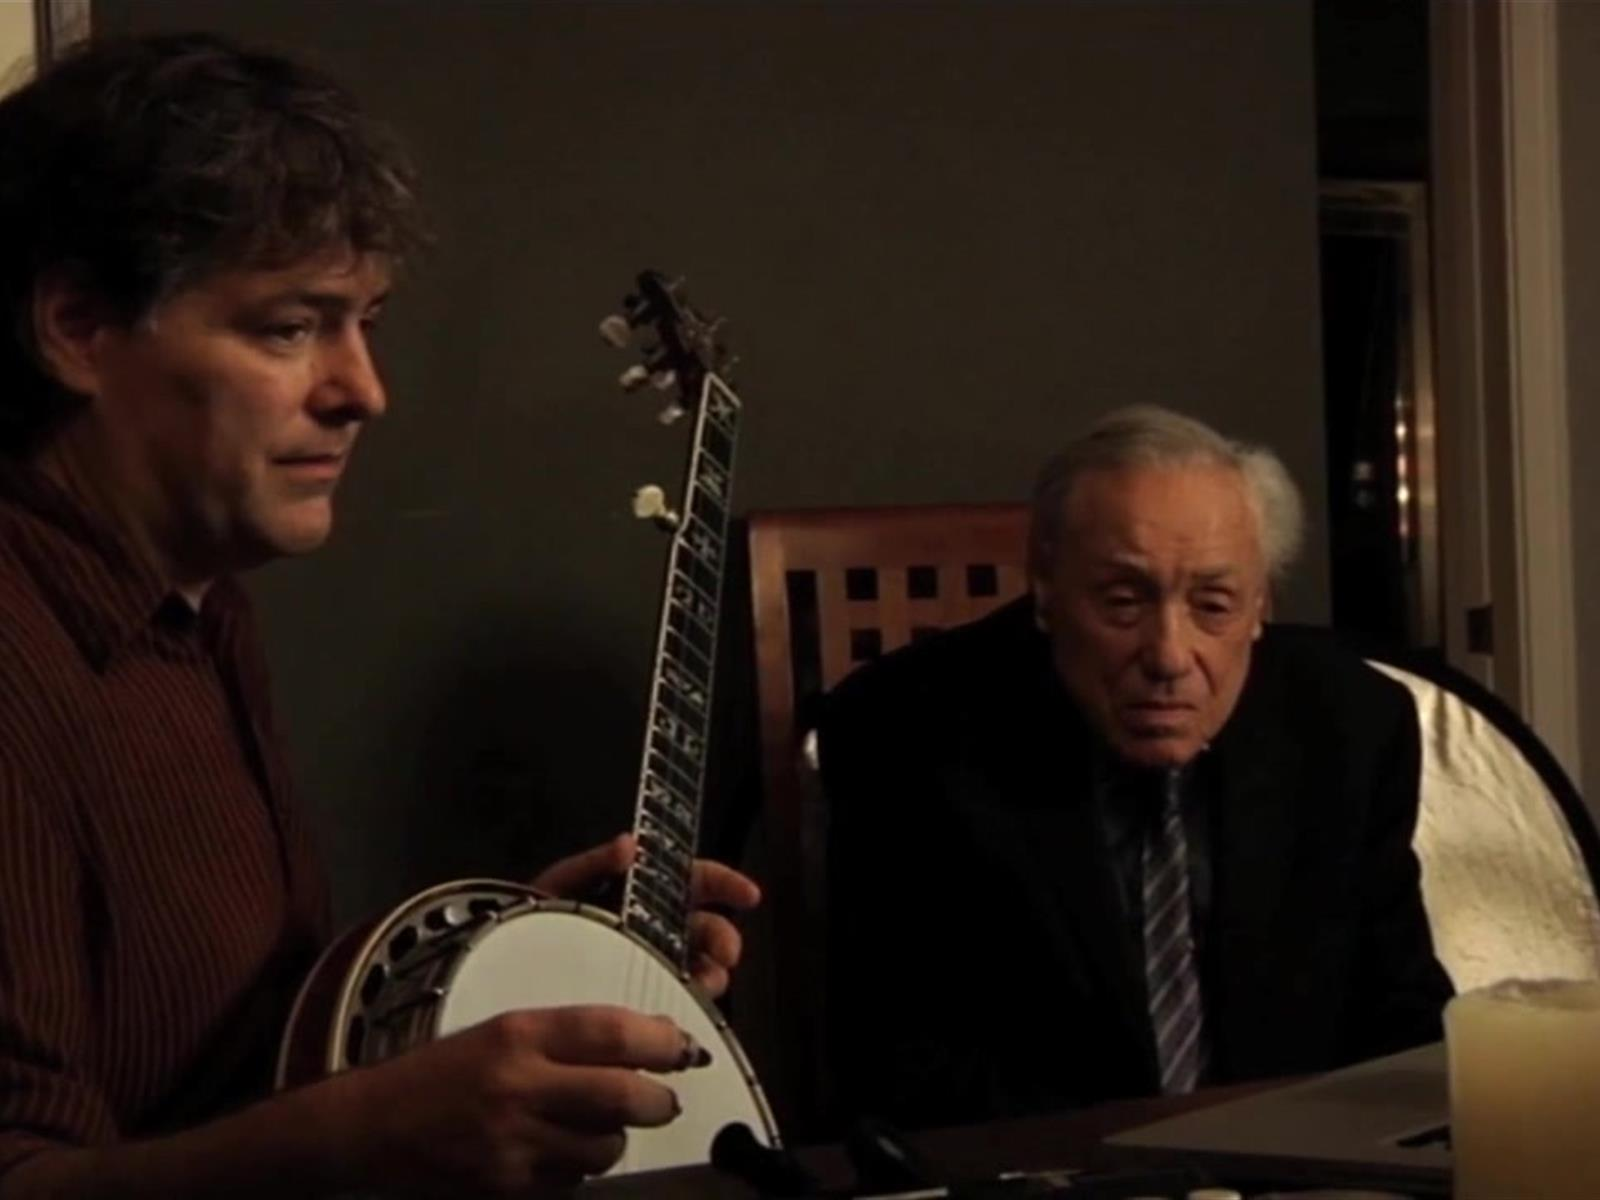 Banjoist Béla Fleck is finding a home in the classical world   The State